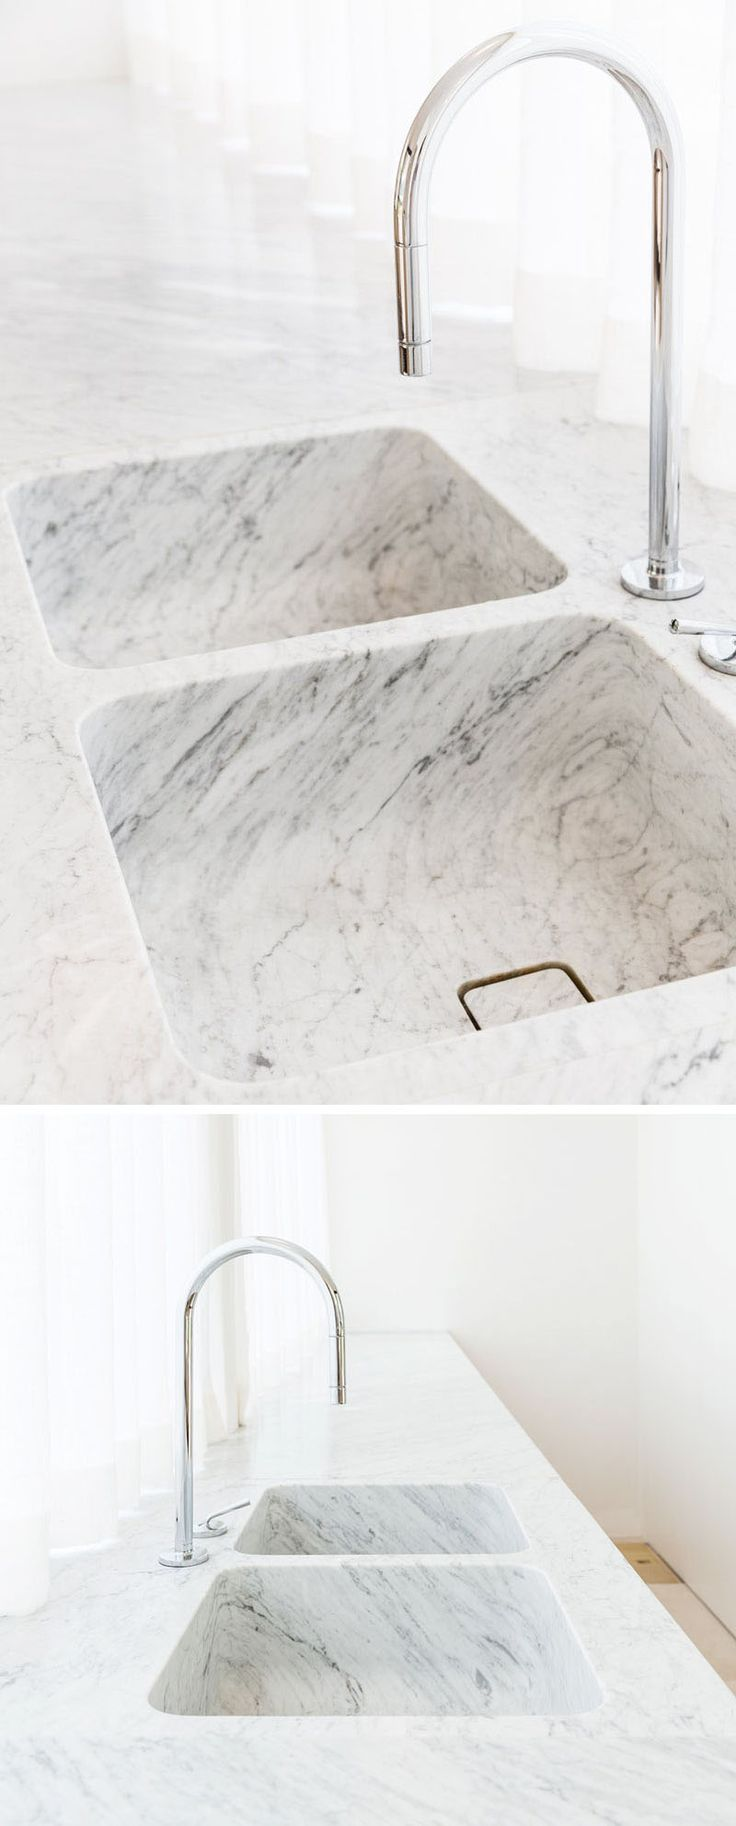 Kitchen Design Idea - Seamless Kitchen Sinks Integrated Into The Countertop // These two integrated sinks showcase the beauty of marble by allowing the striations to continue from the countertop down into the base of the sink.